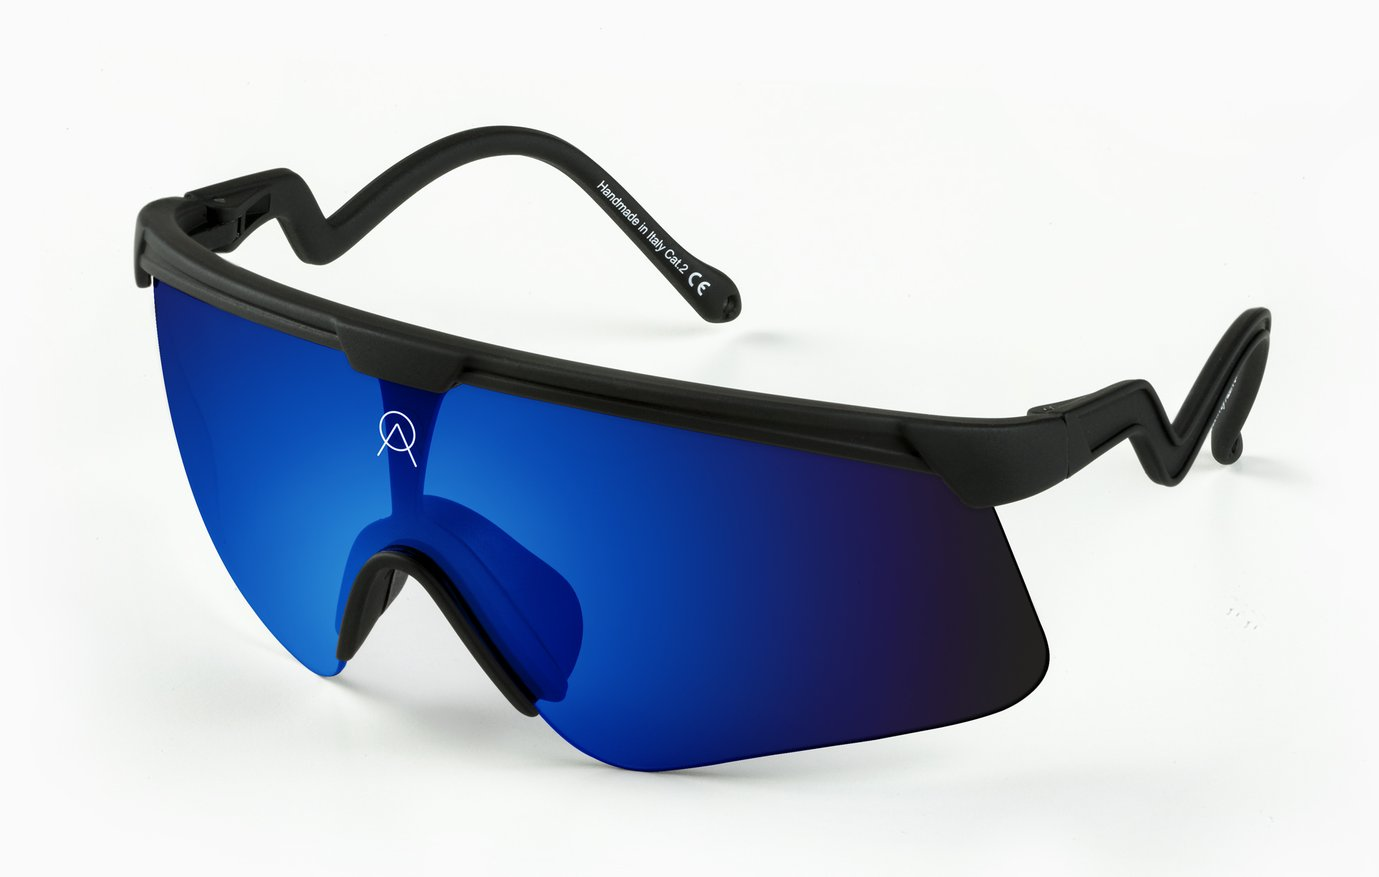 SUNGLASSES ALBA DELTA BLACK RV SKY